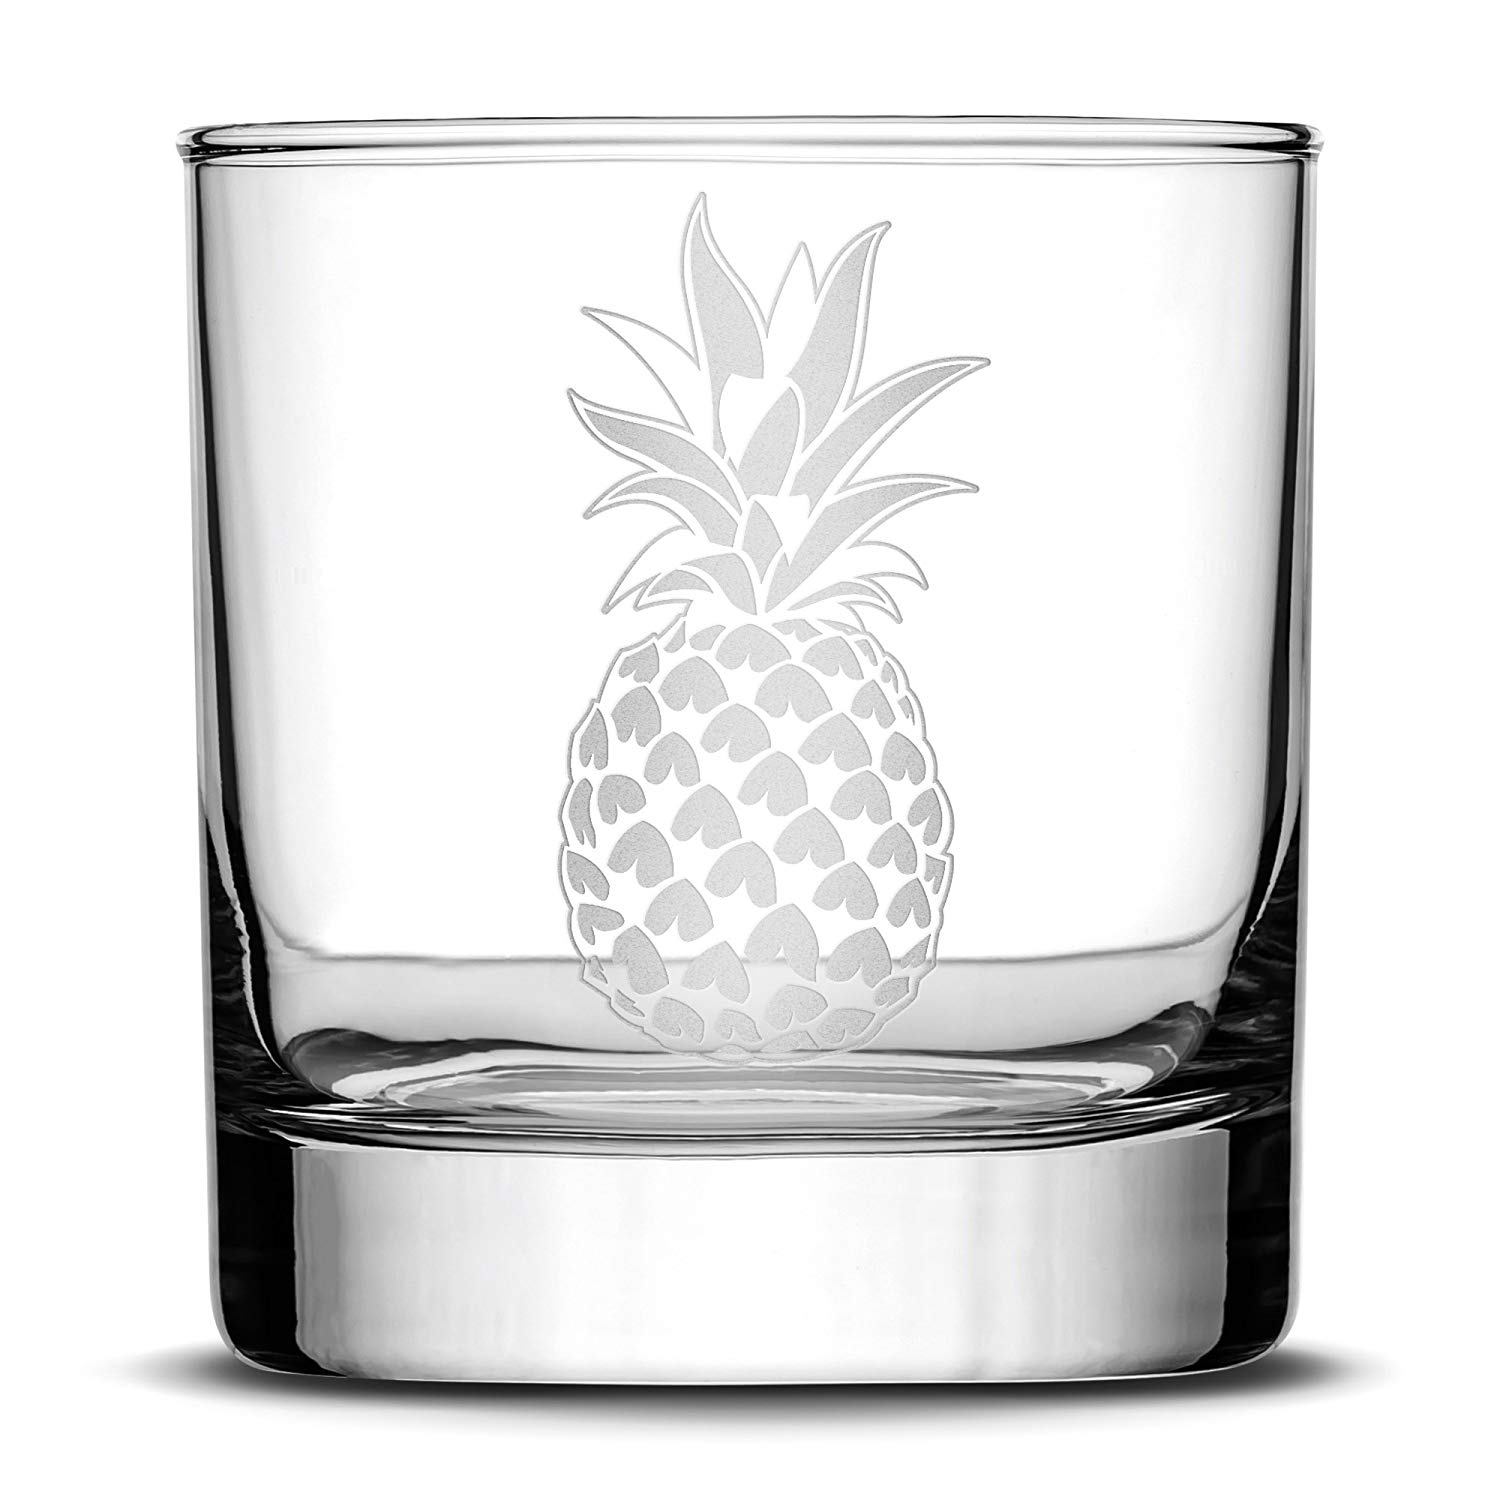 Premium Pineapple Whiskey Glass, Hand Etched Design, 10oz Rocks Glass Made in USA, Highball Gifts, Sand Carved by Integrity Bottles